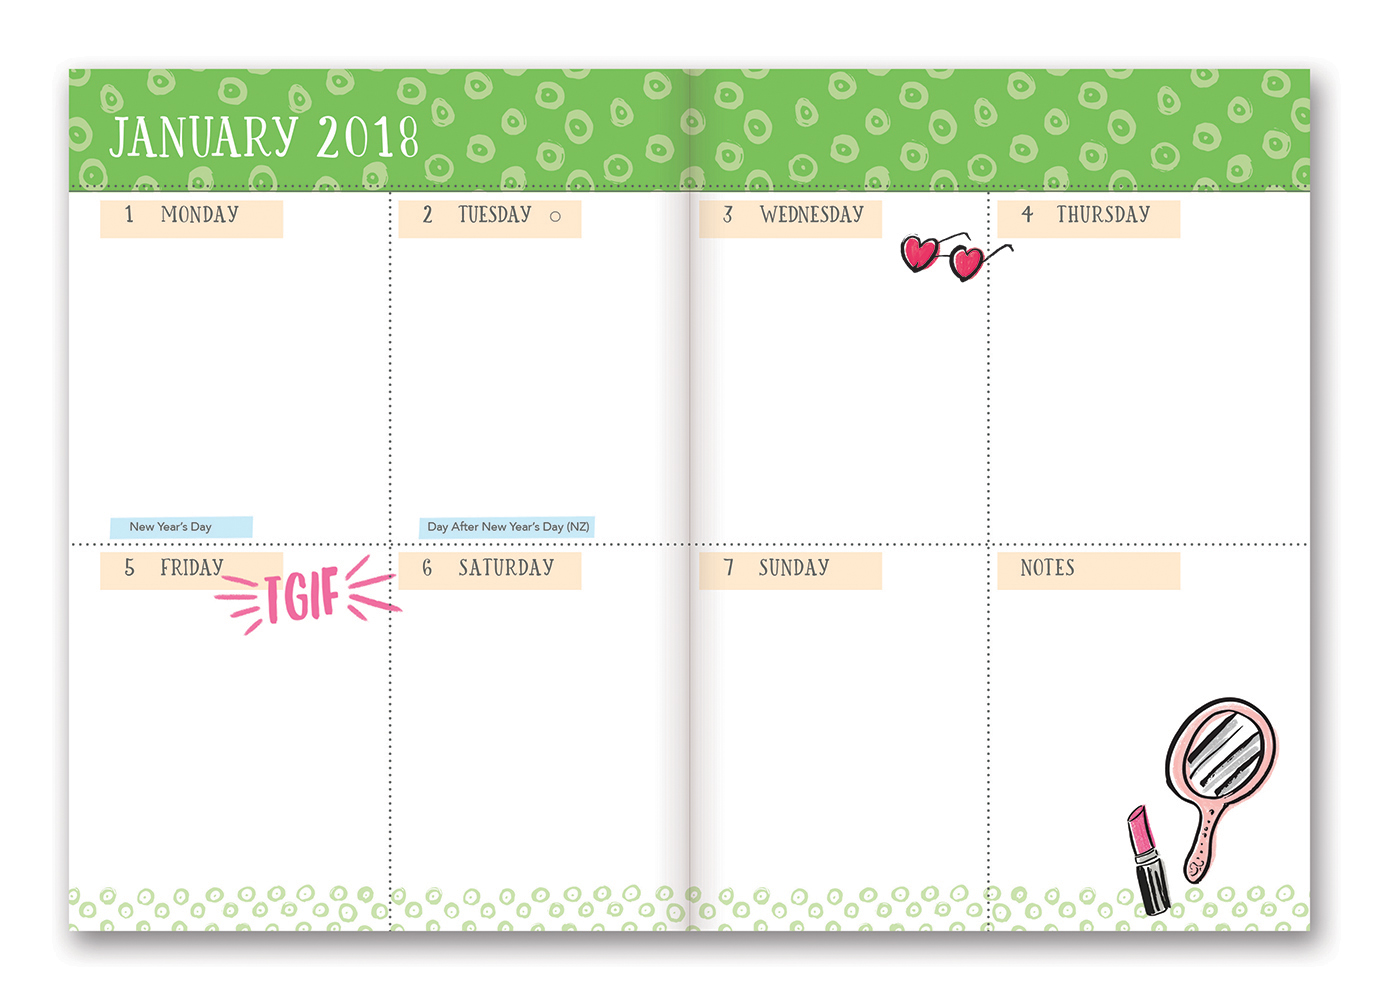 Today Is Going to Be Awesome Take Me With You Planner 2018 by Orange Circle Studio back 9781682582237